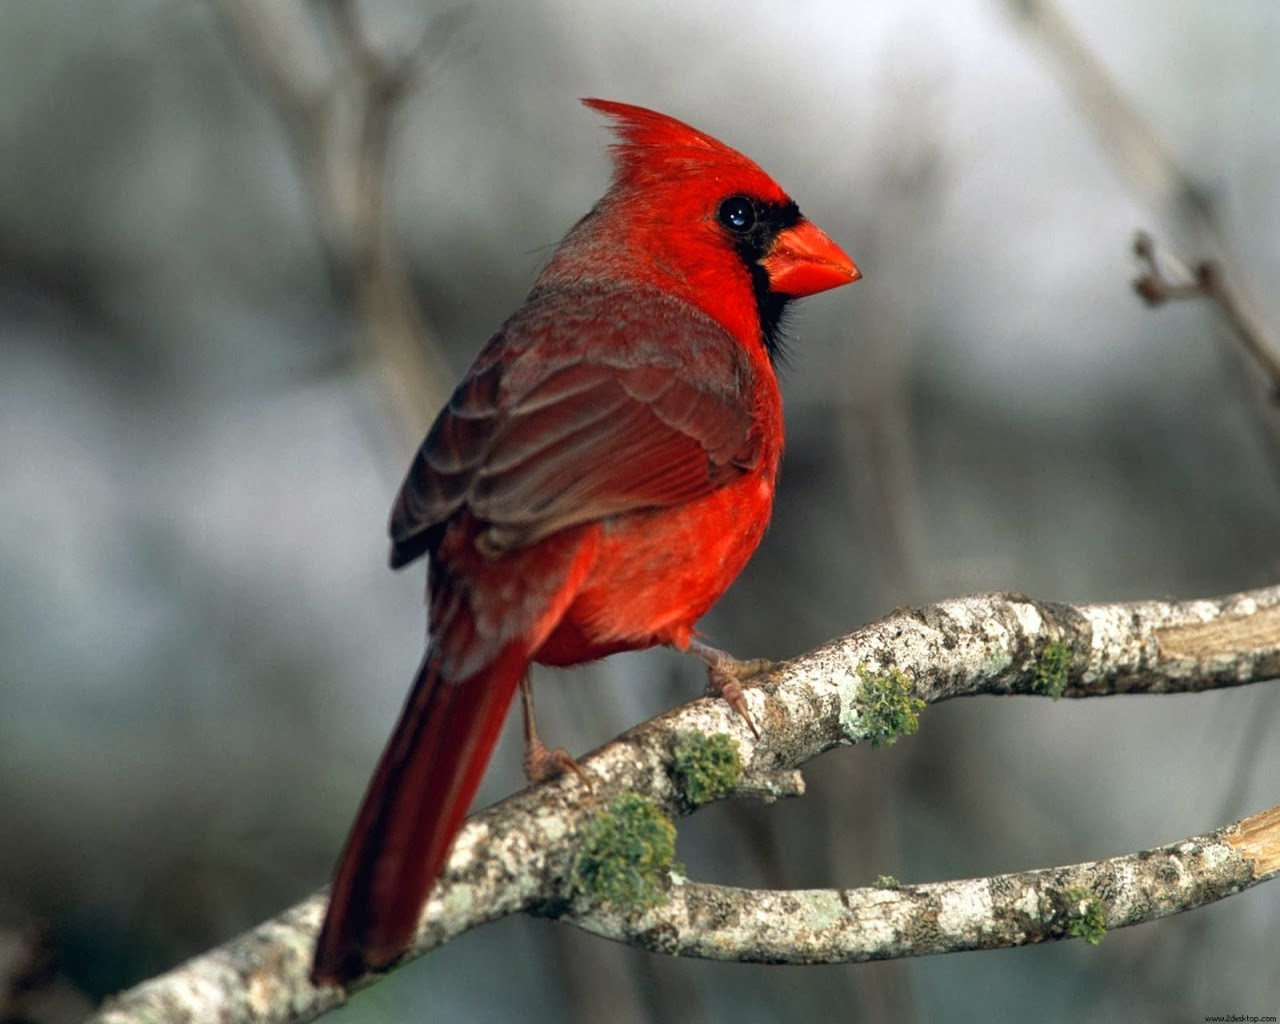 cardinal hd wallpaper download 1080p eagle hd wallpaper download 1080p